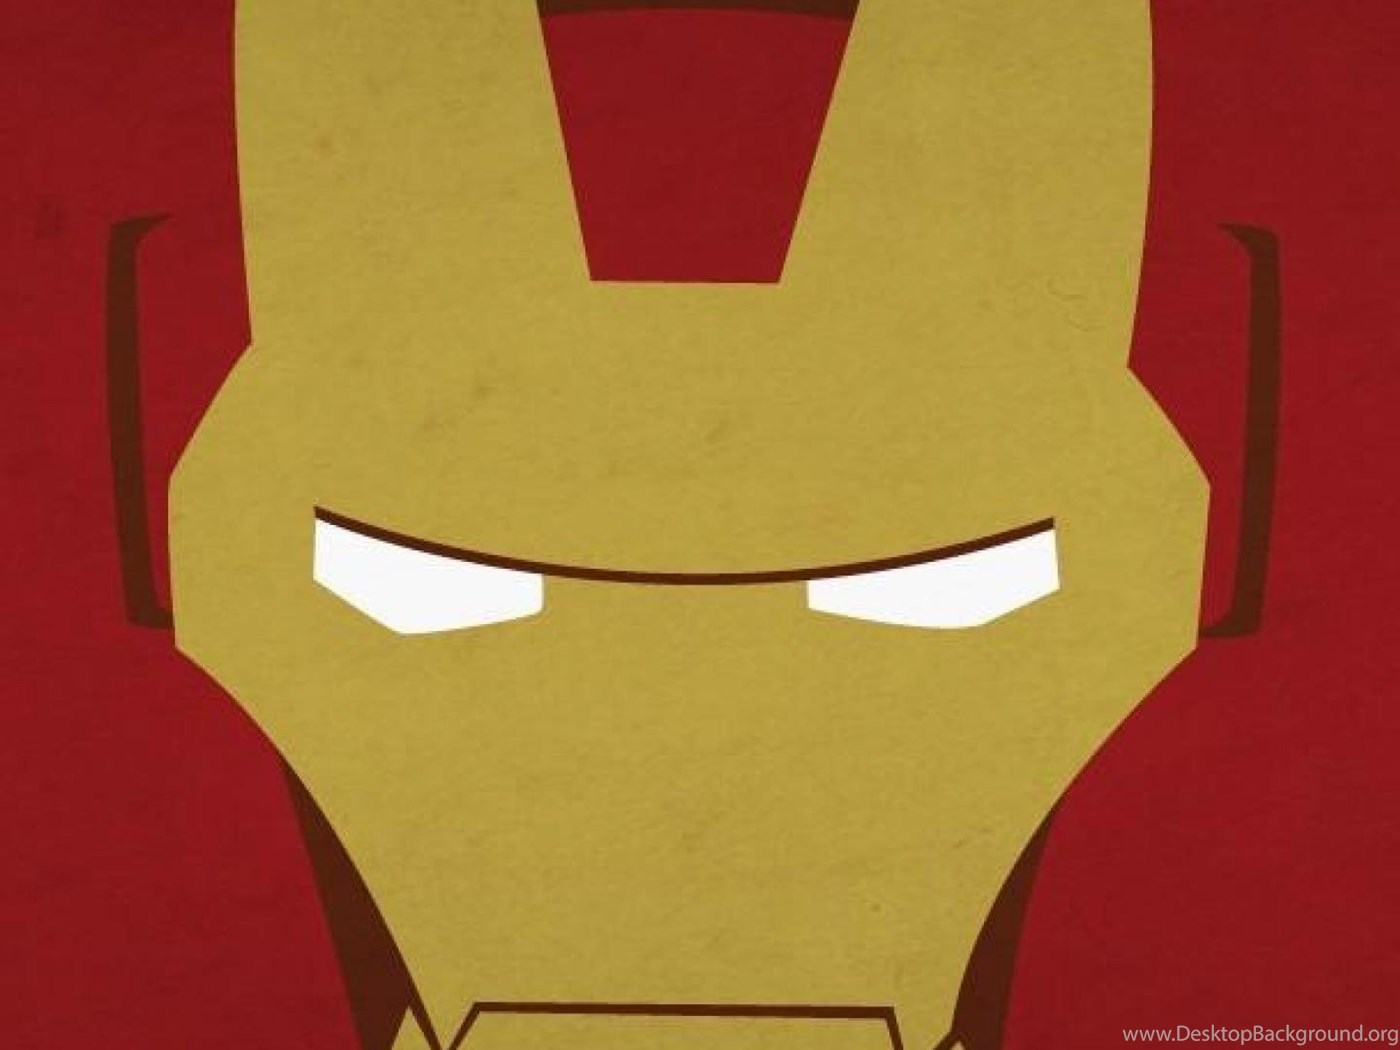 Superhero Minimalism Blo0p Iron Man Heroes Hd Wallpapers Desktop